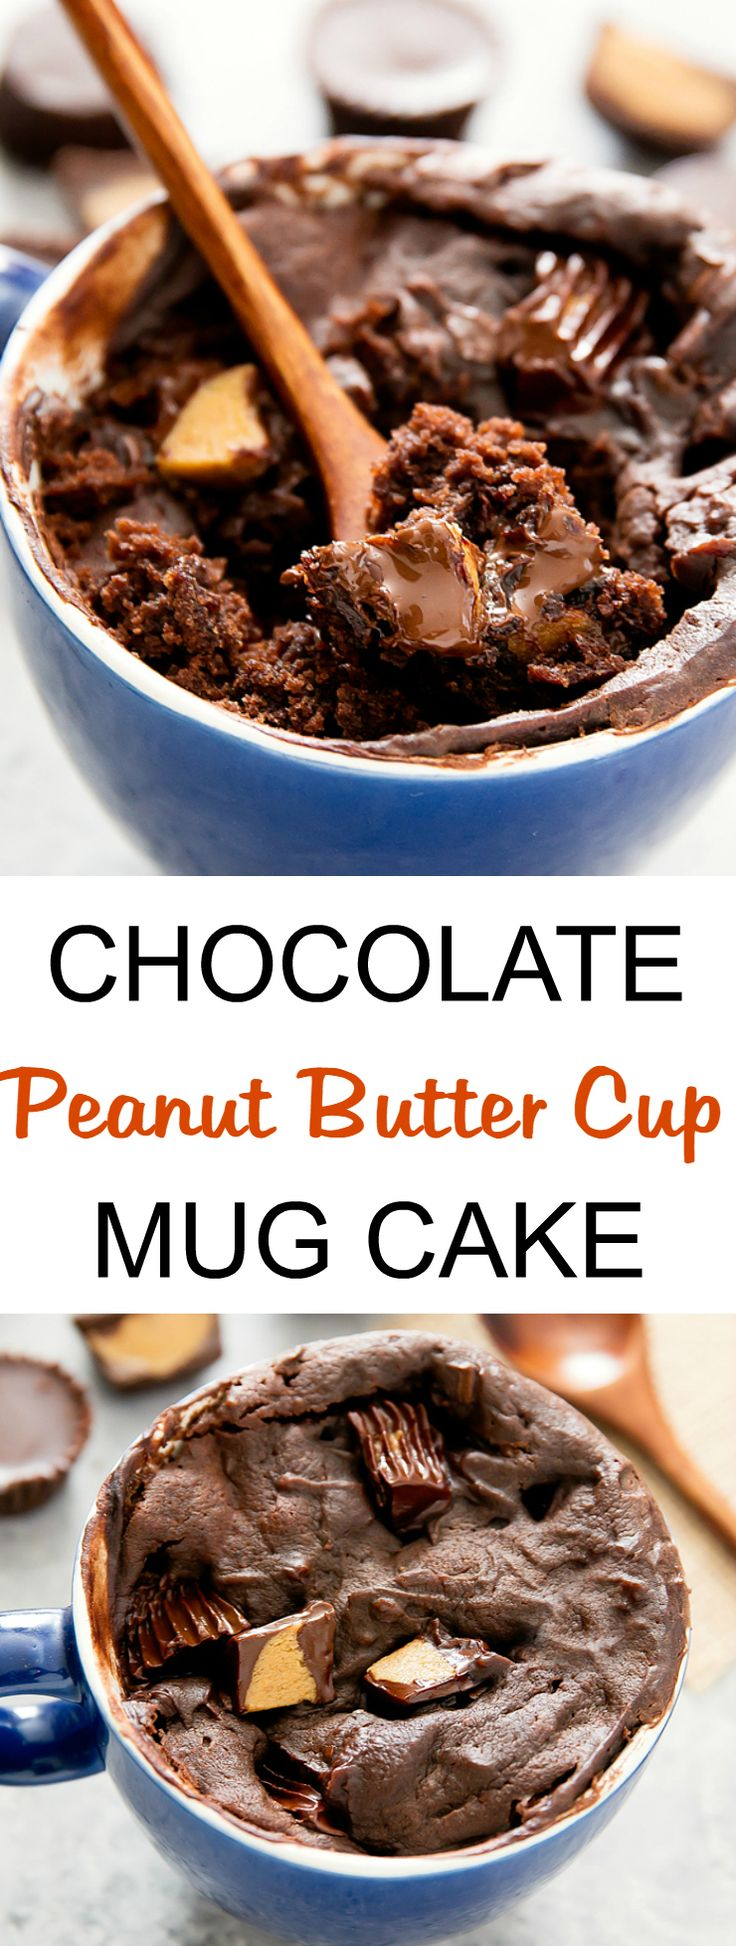 Chocolate Peanut Butter Cup Mug Cake. Creamy, melty single serving mug cake. Cooks in one minute in the microwave!